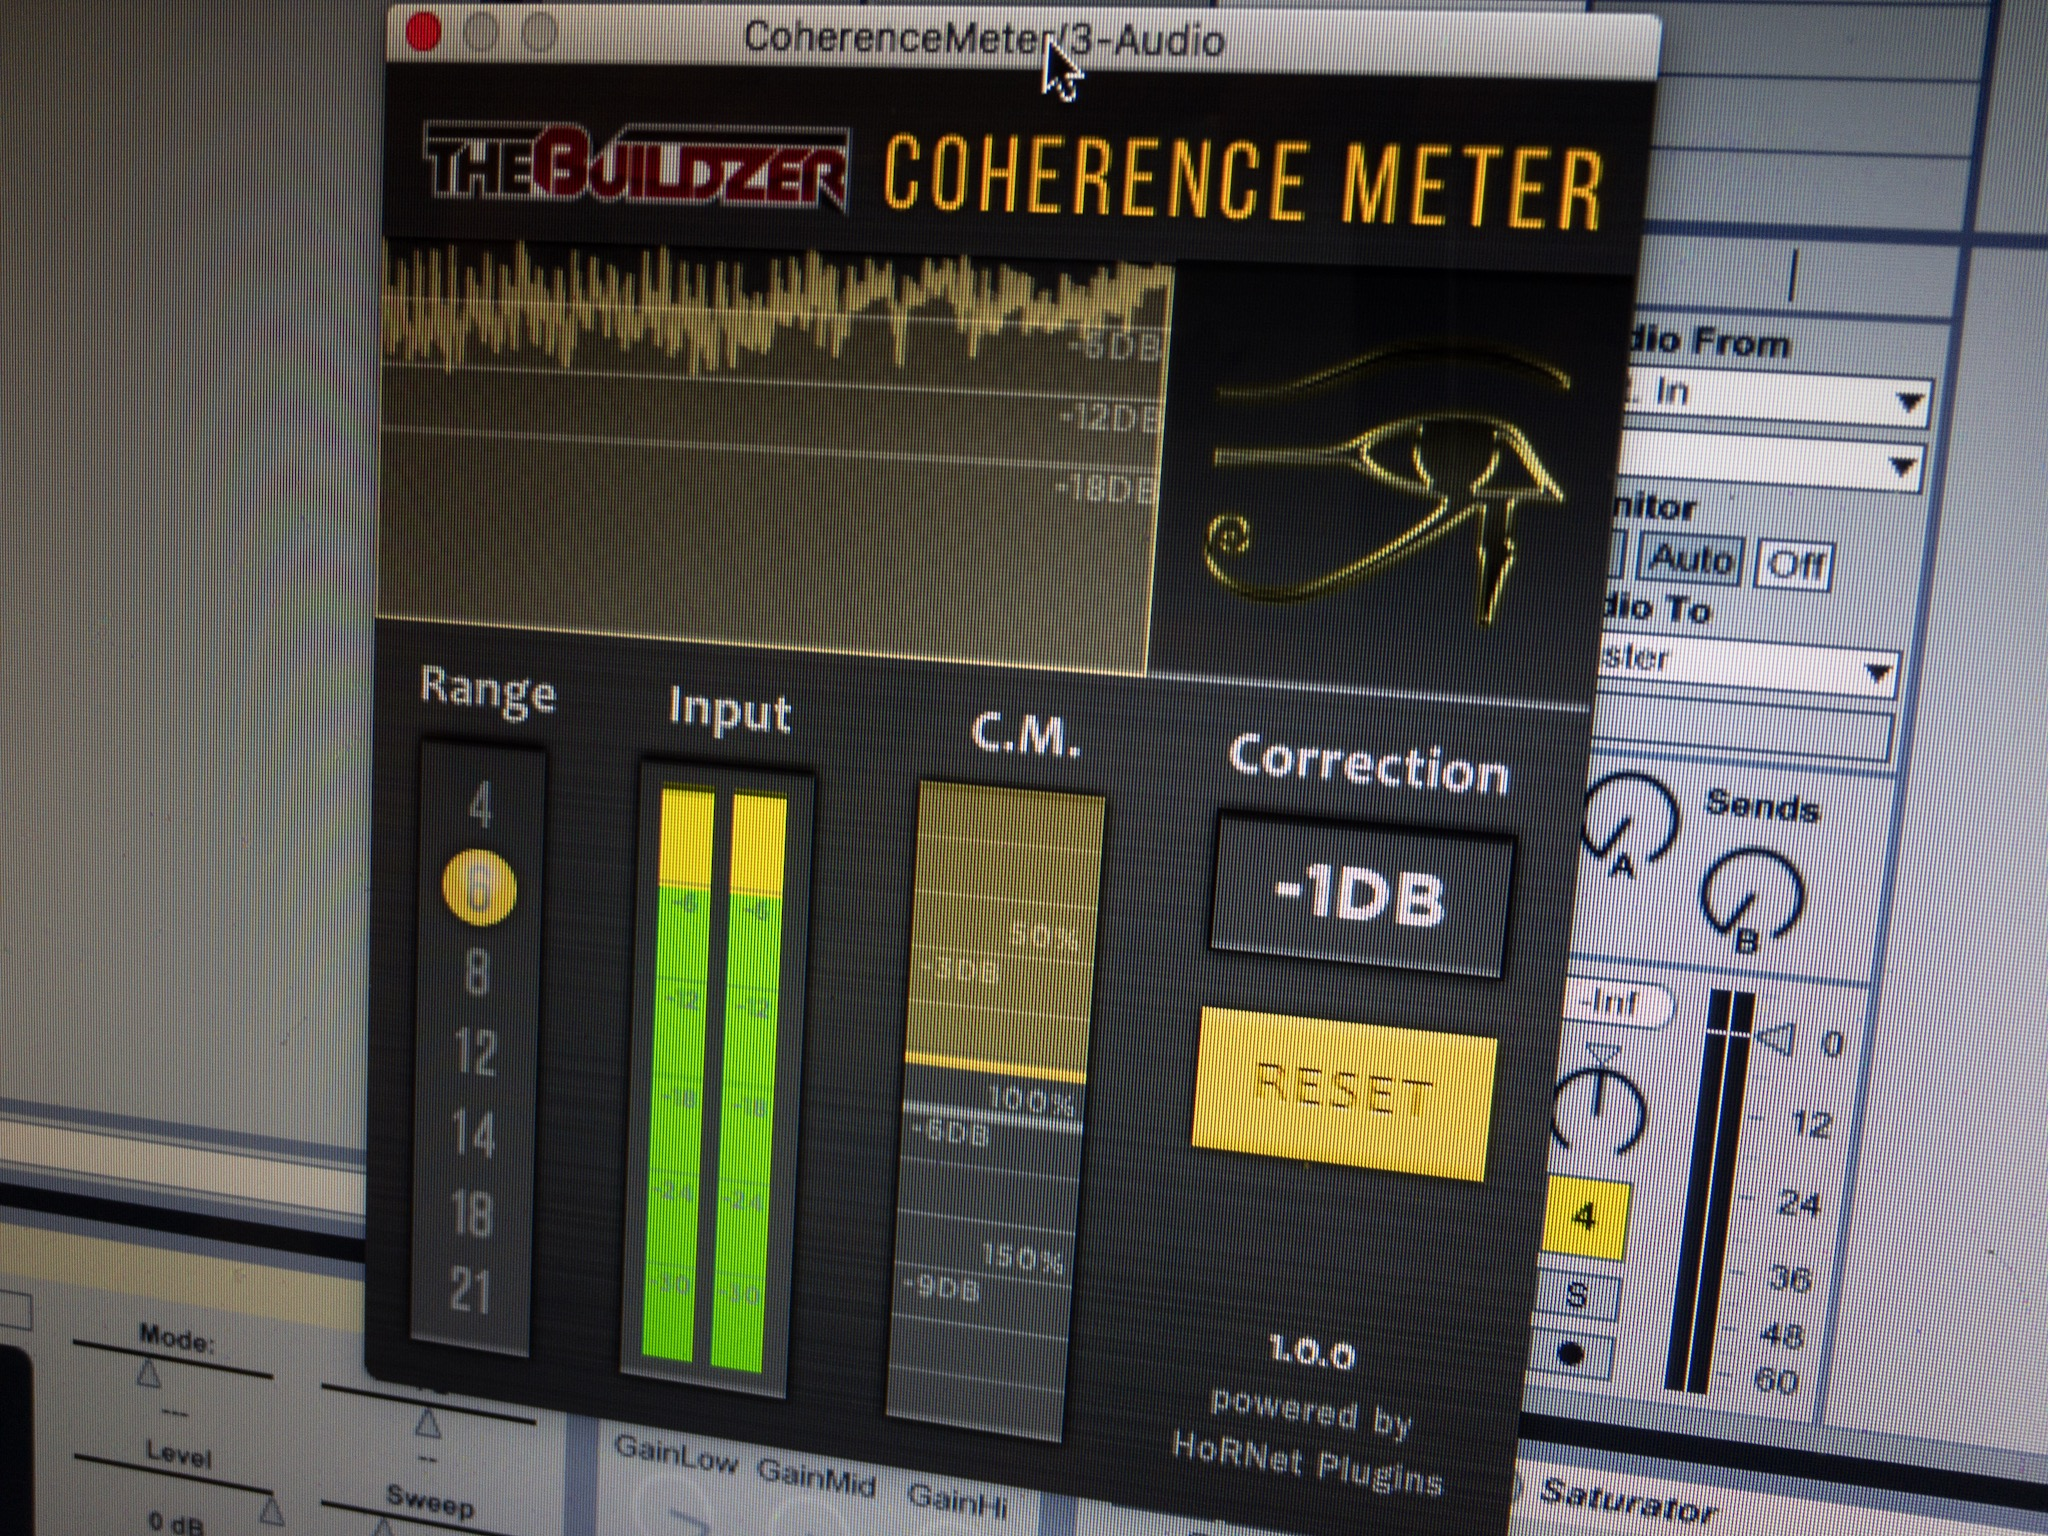 The Buildzer Coherence Meter